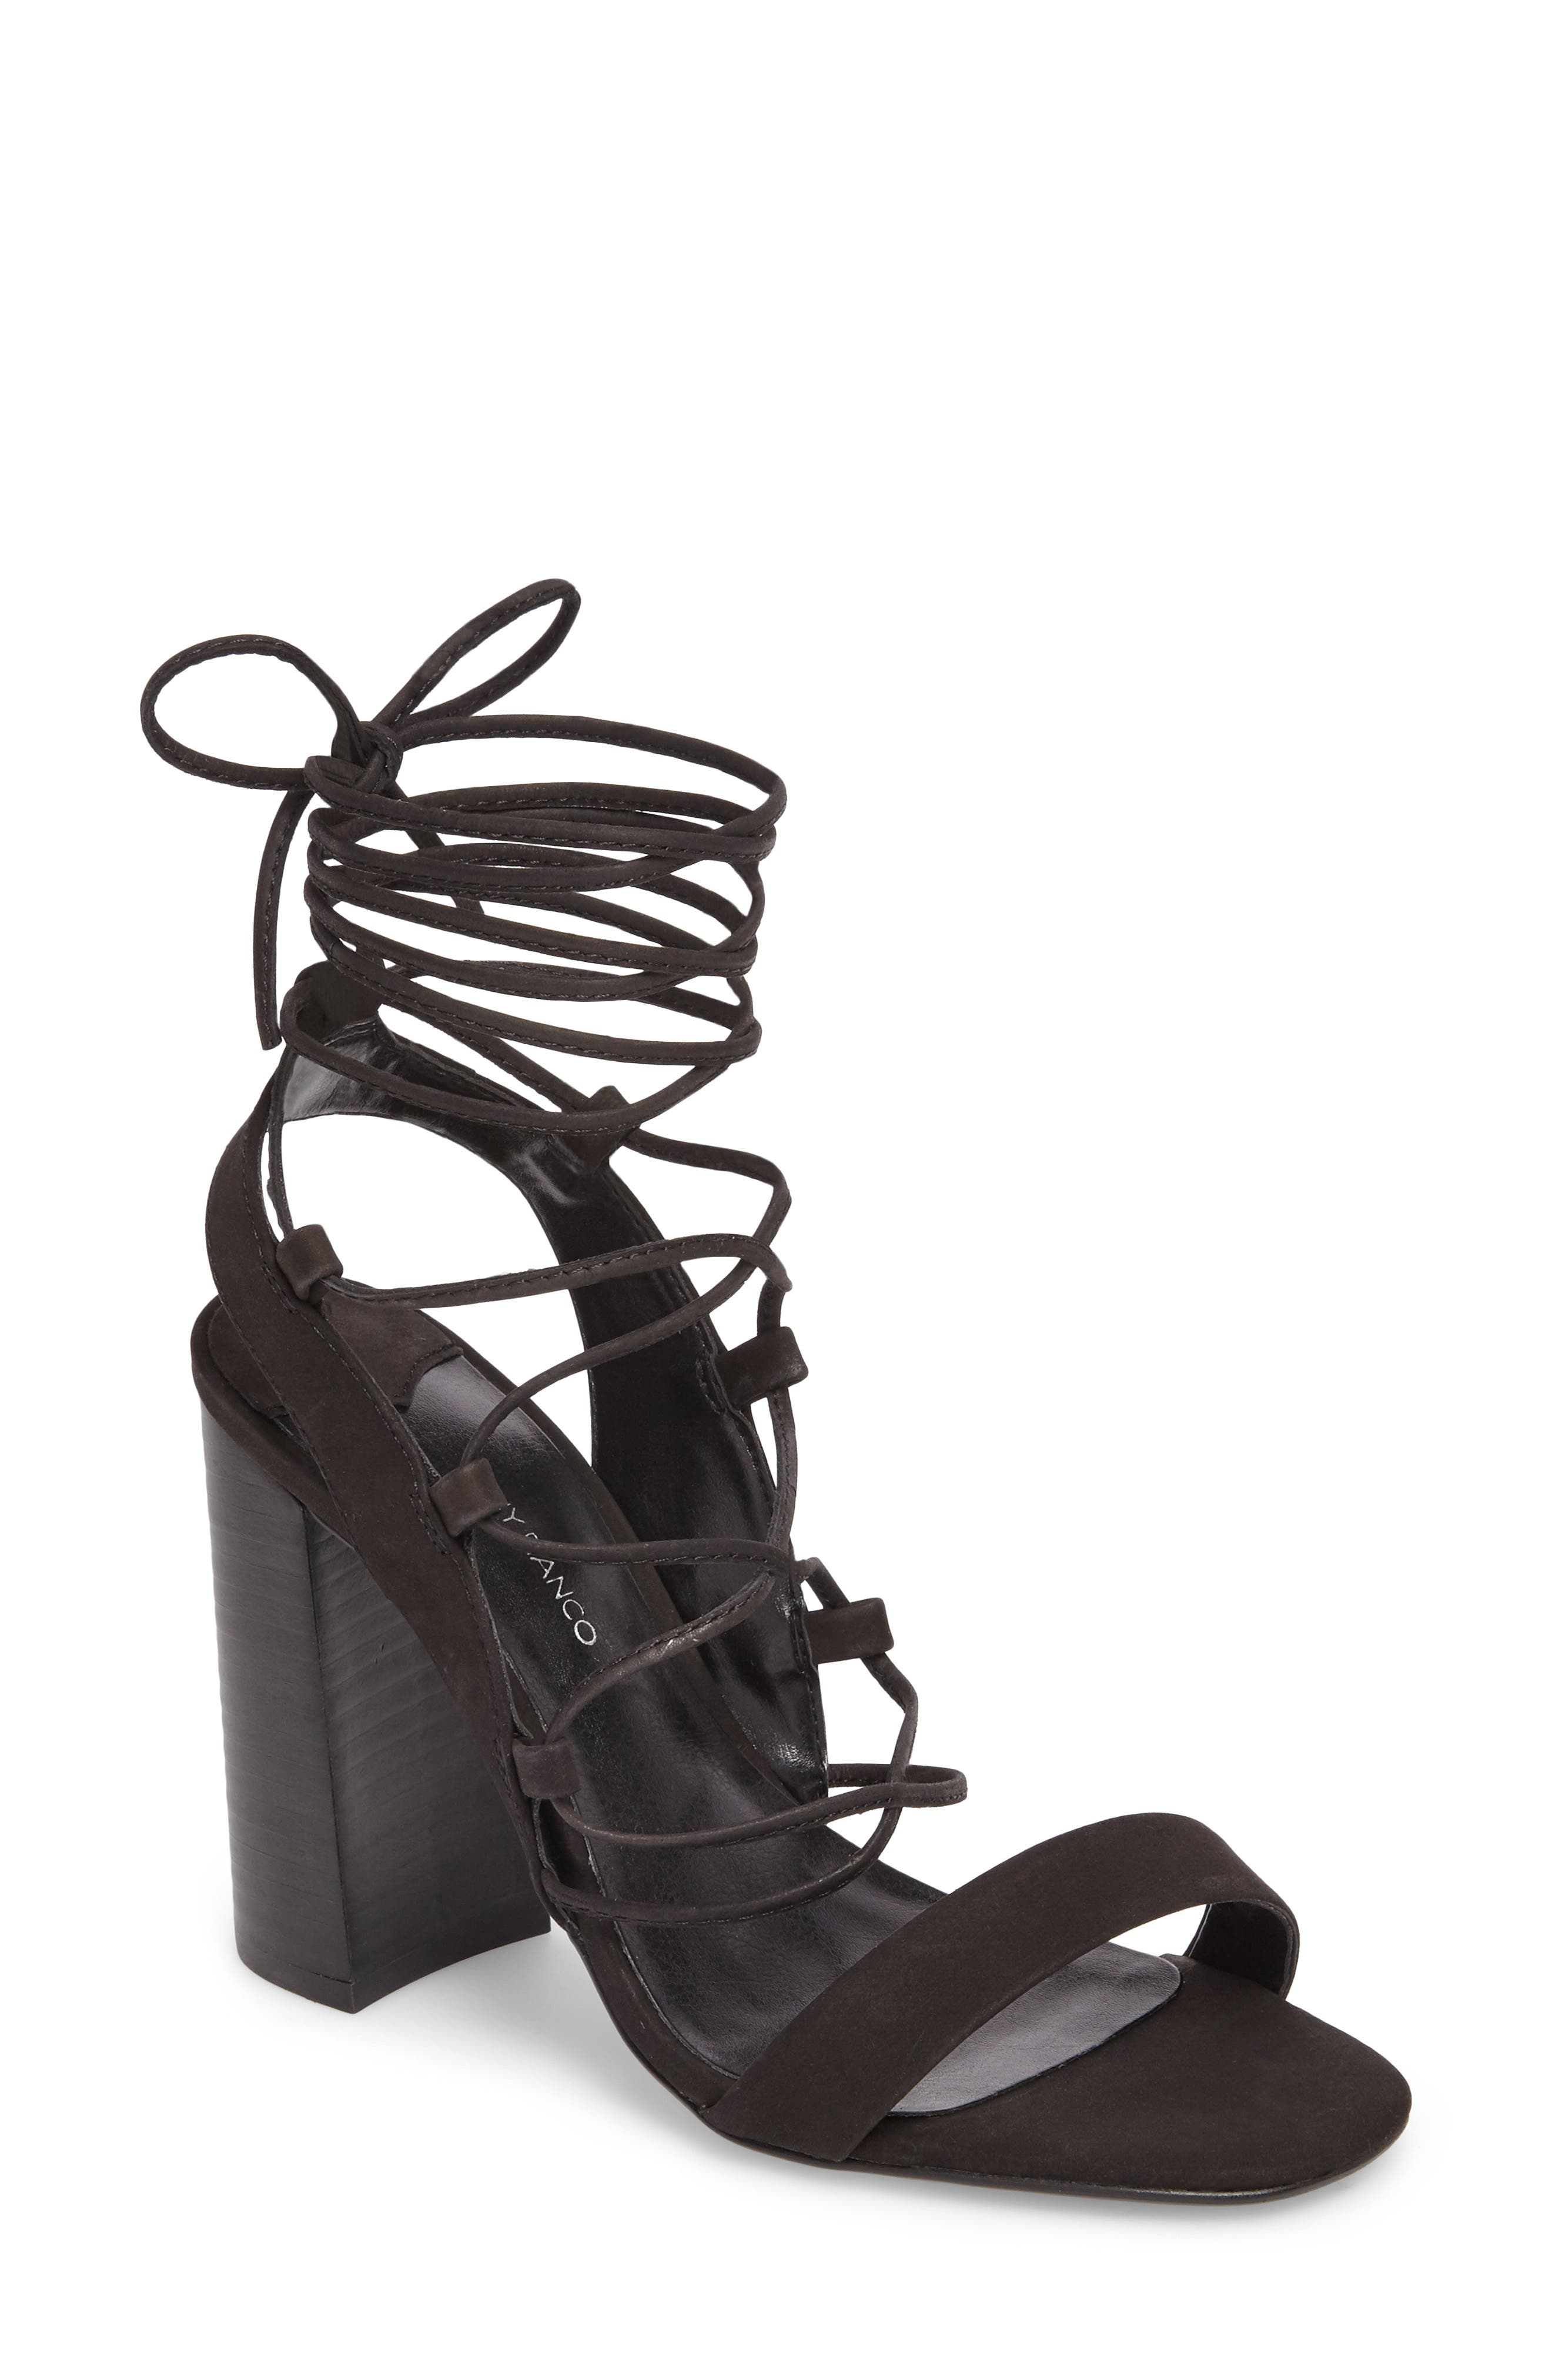 Main Image - Tony Bianco Dani Ghillie Flared Heel Sandal (Women)